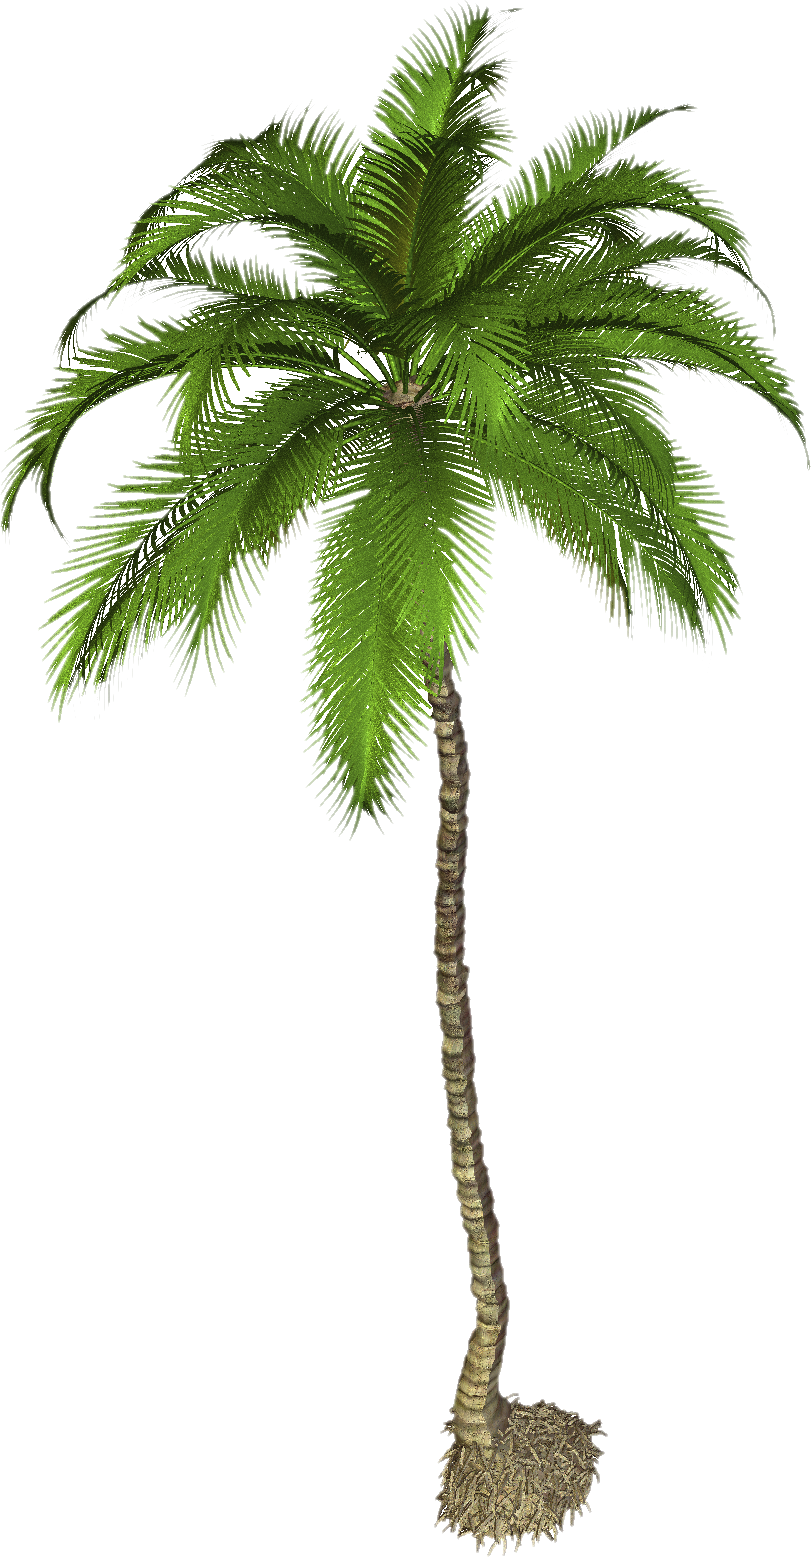 Tree images all pic. Palm leaf png transparent image freeuse